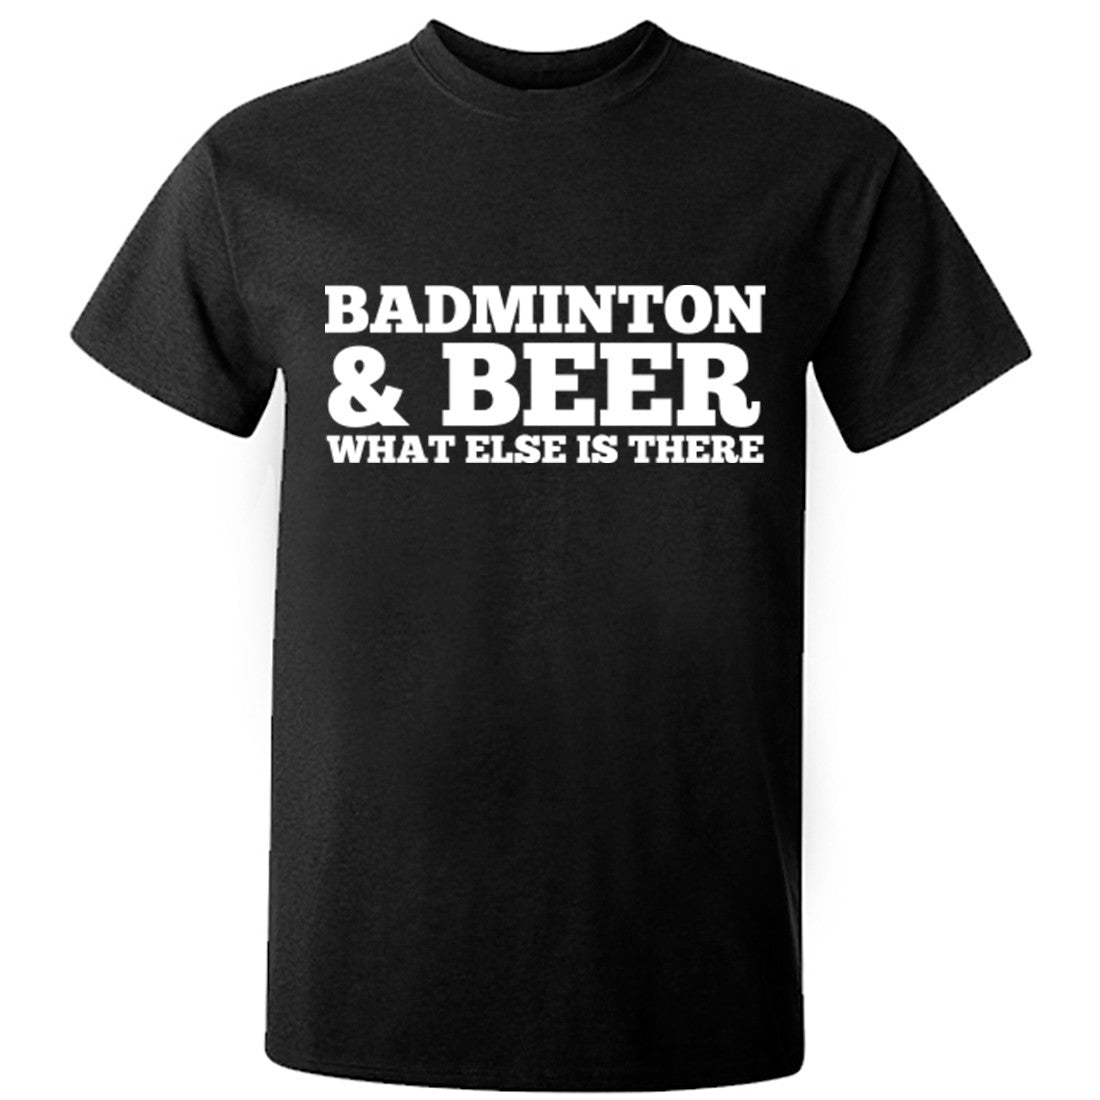 Badminton And Beer What Else Is There Unisex Fit T-Shirt K0677